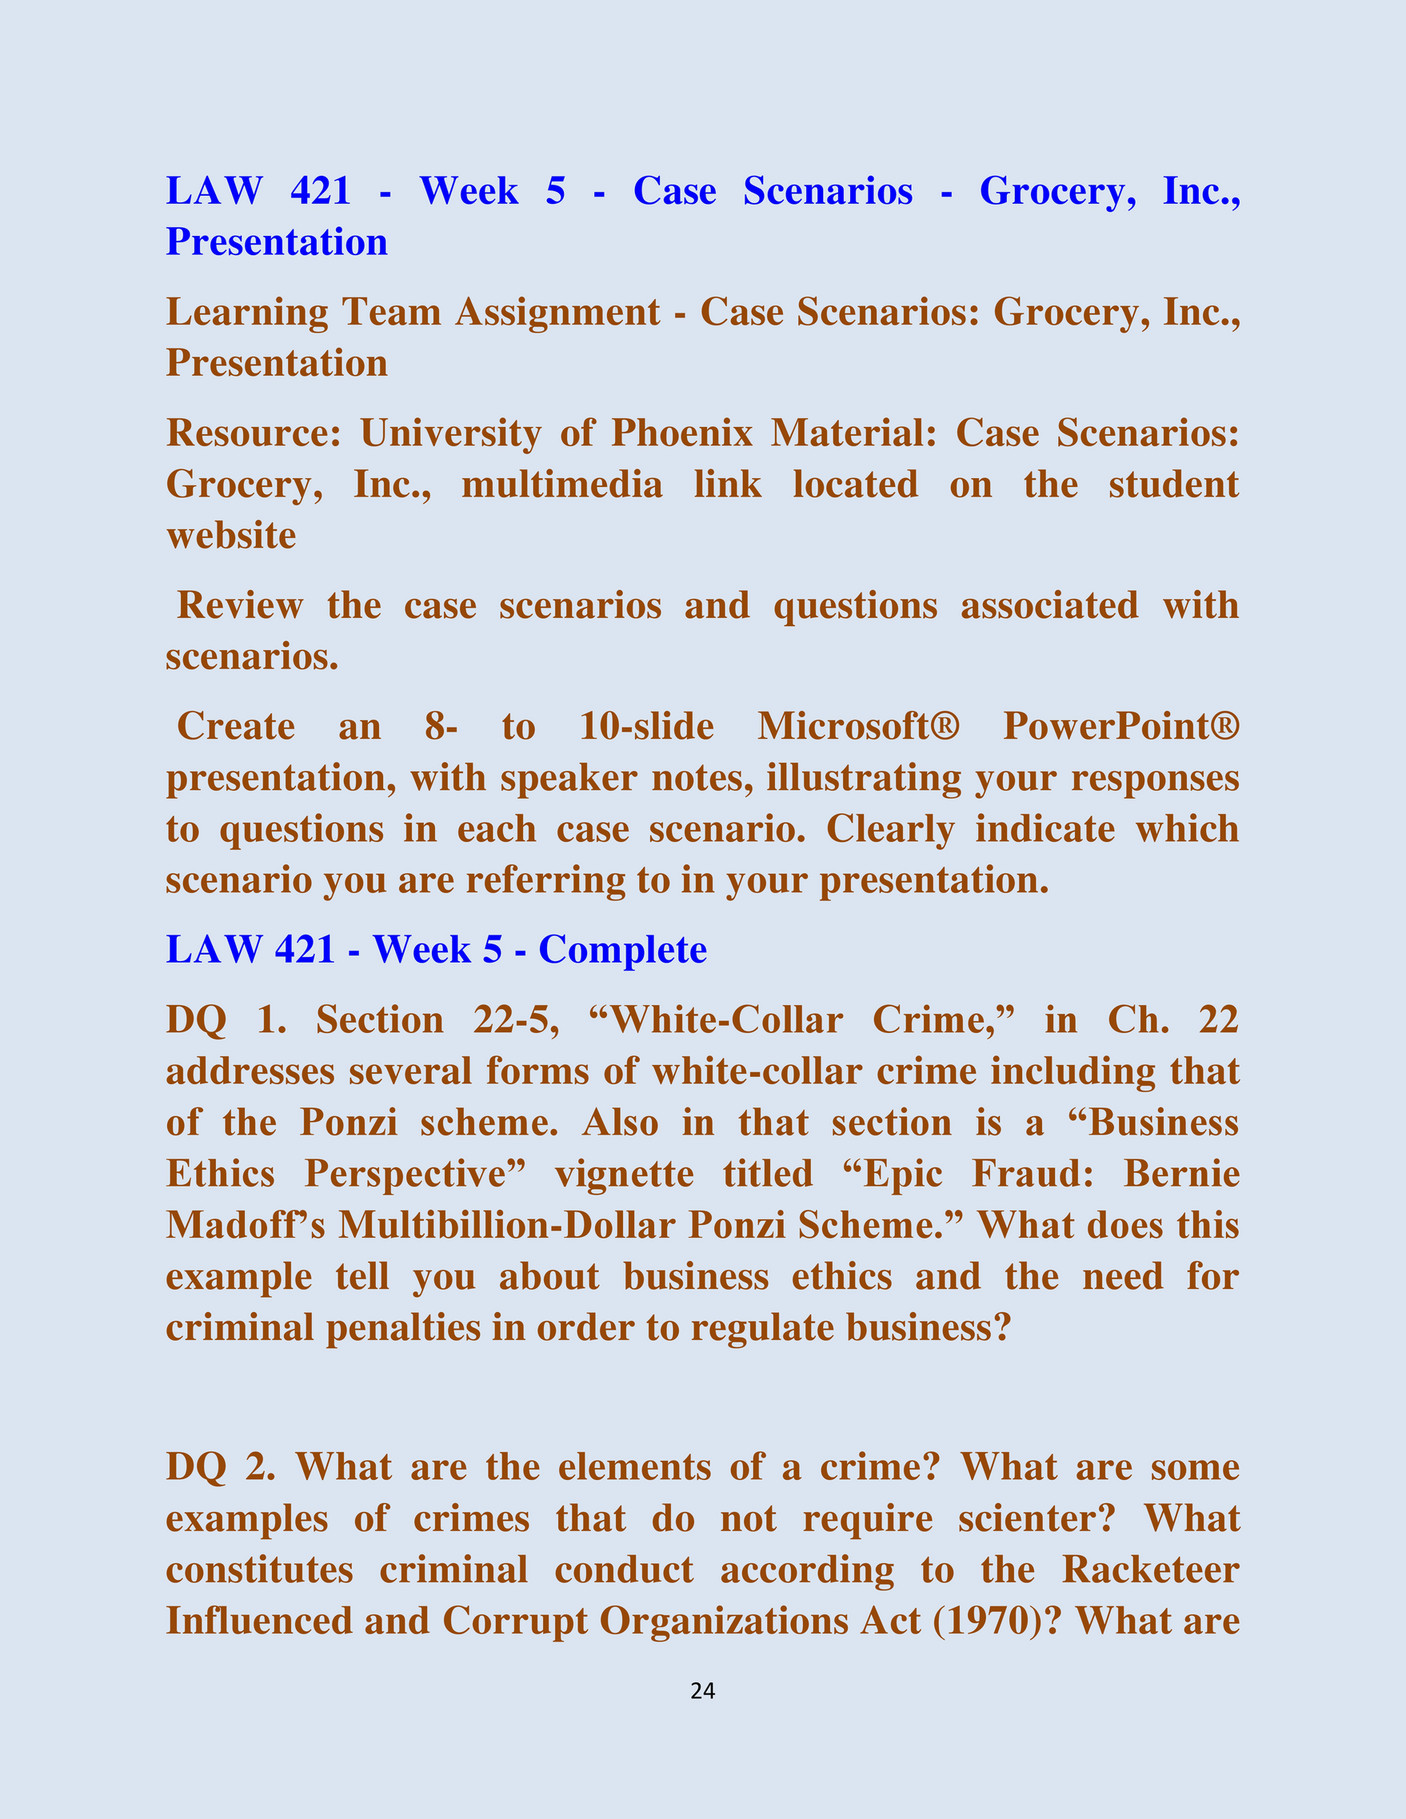 week 4 law 421 case scenario Case scenario week 4 law 421 - download as word doc (doc / docx), pdf file (pdf), text file (txt) or read online scribd is the world's largest social reading and publishing site search search.